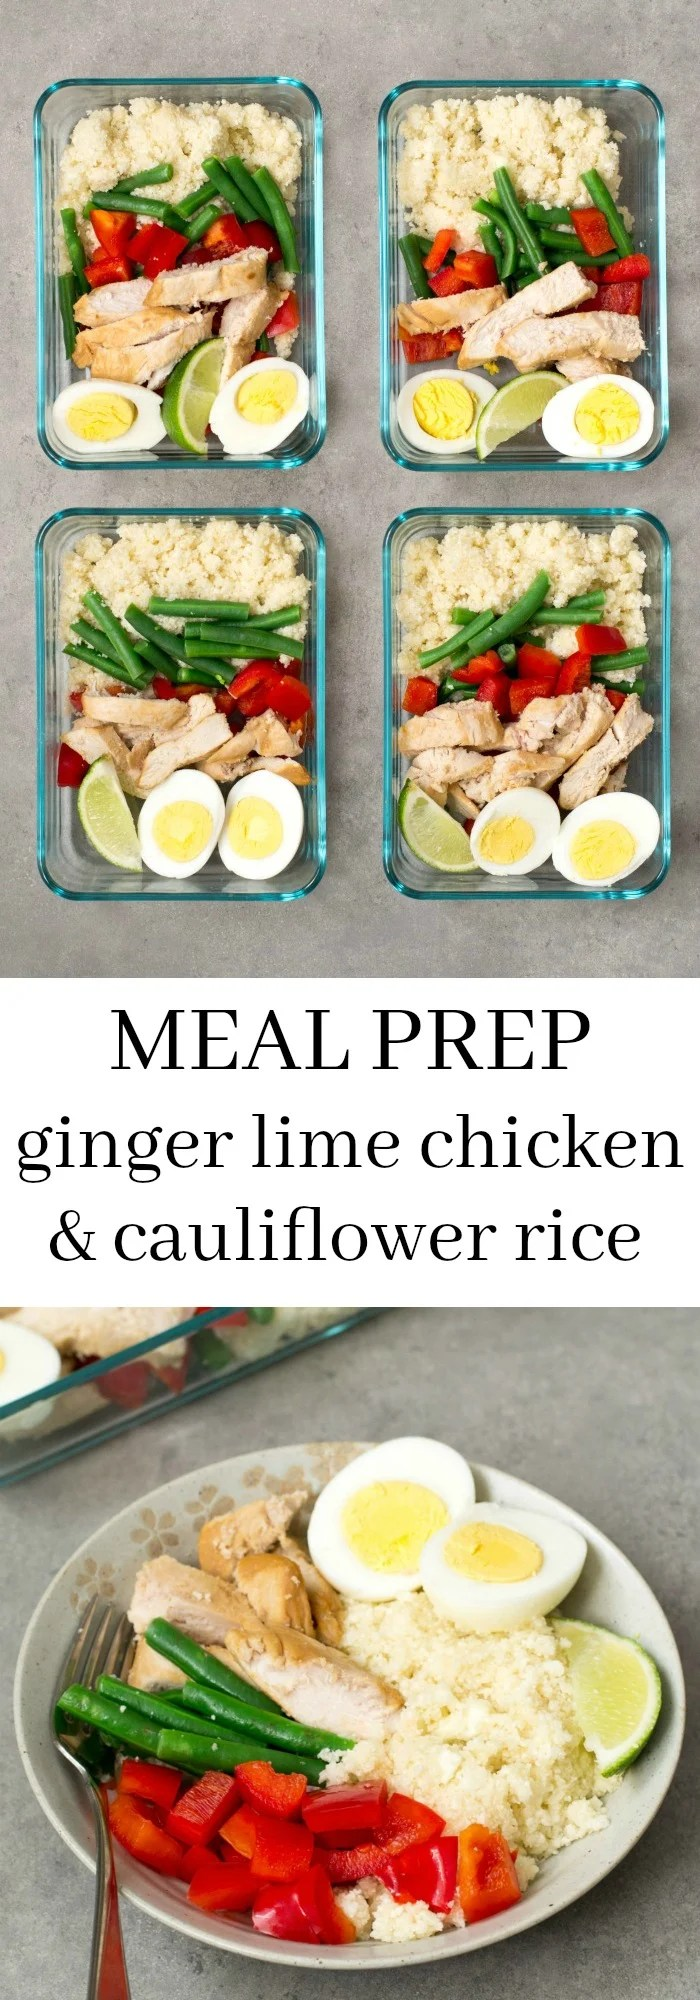 Ginger lime chicken cauliflower rice meal prep real food real deals this ginger lime chicken cauliflower rice bowl is a delicious make ahead recipe for weekend forumfinder Image collections